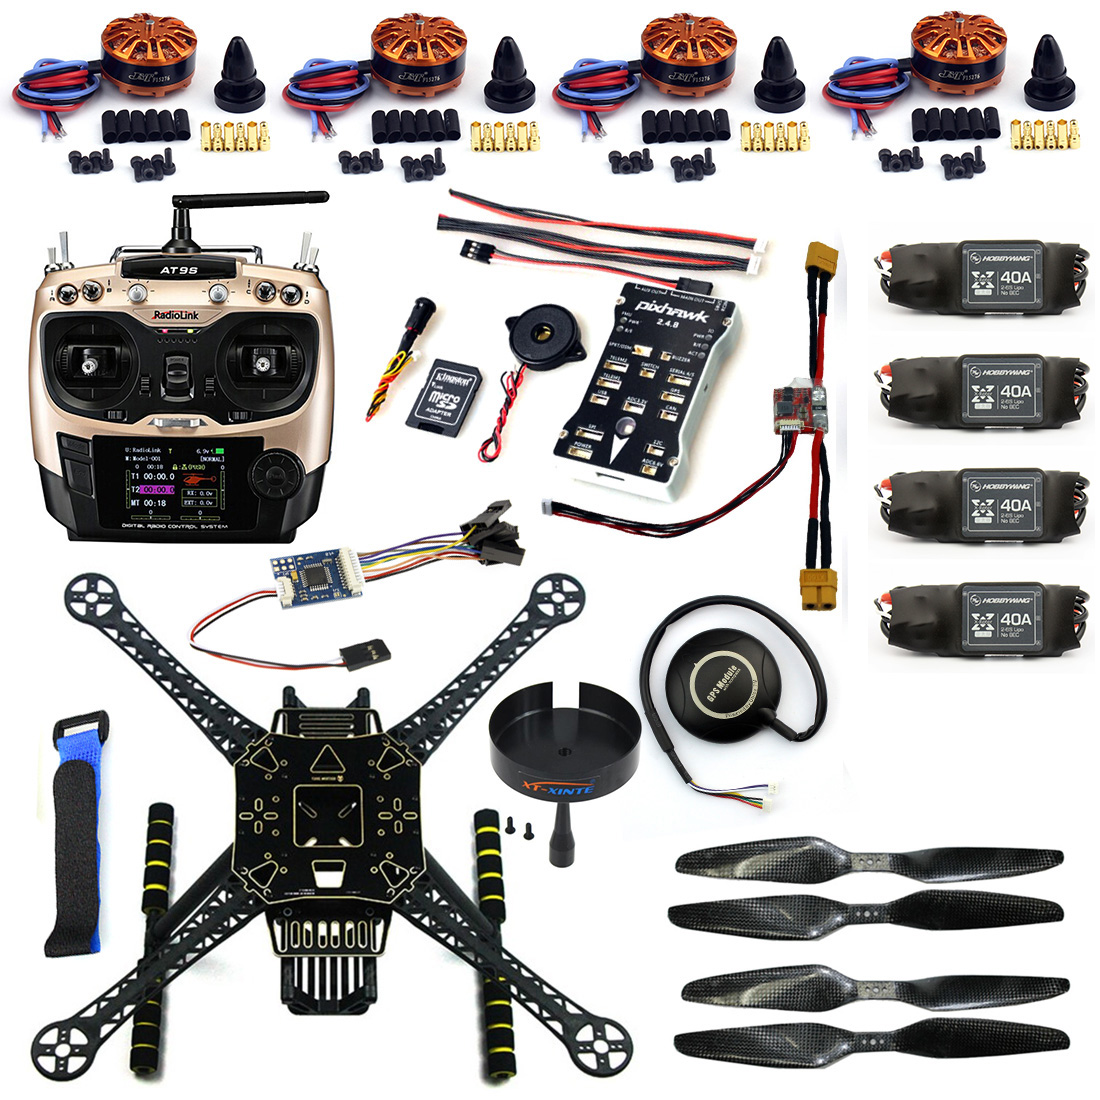 F19457-B DIY FPV Drone Kit S600 Quadcopter Frame 40A ESC with 700KV Motor Pix Flight Control AT9S Transimitter GPS XT60 Plug fpv racing mini drone 130 quadcopter frame kit with emax rs1306 motor littlebee 20a pro esc sp racing f3 flight control